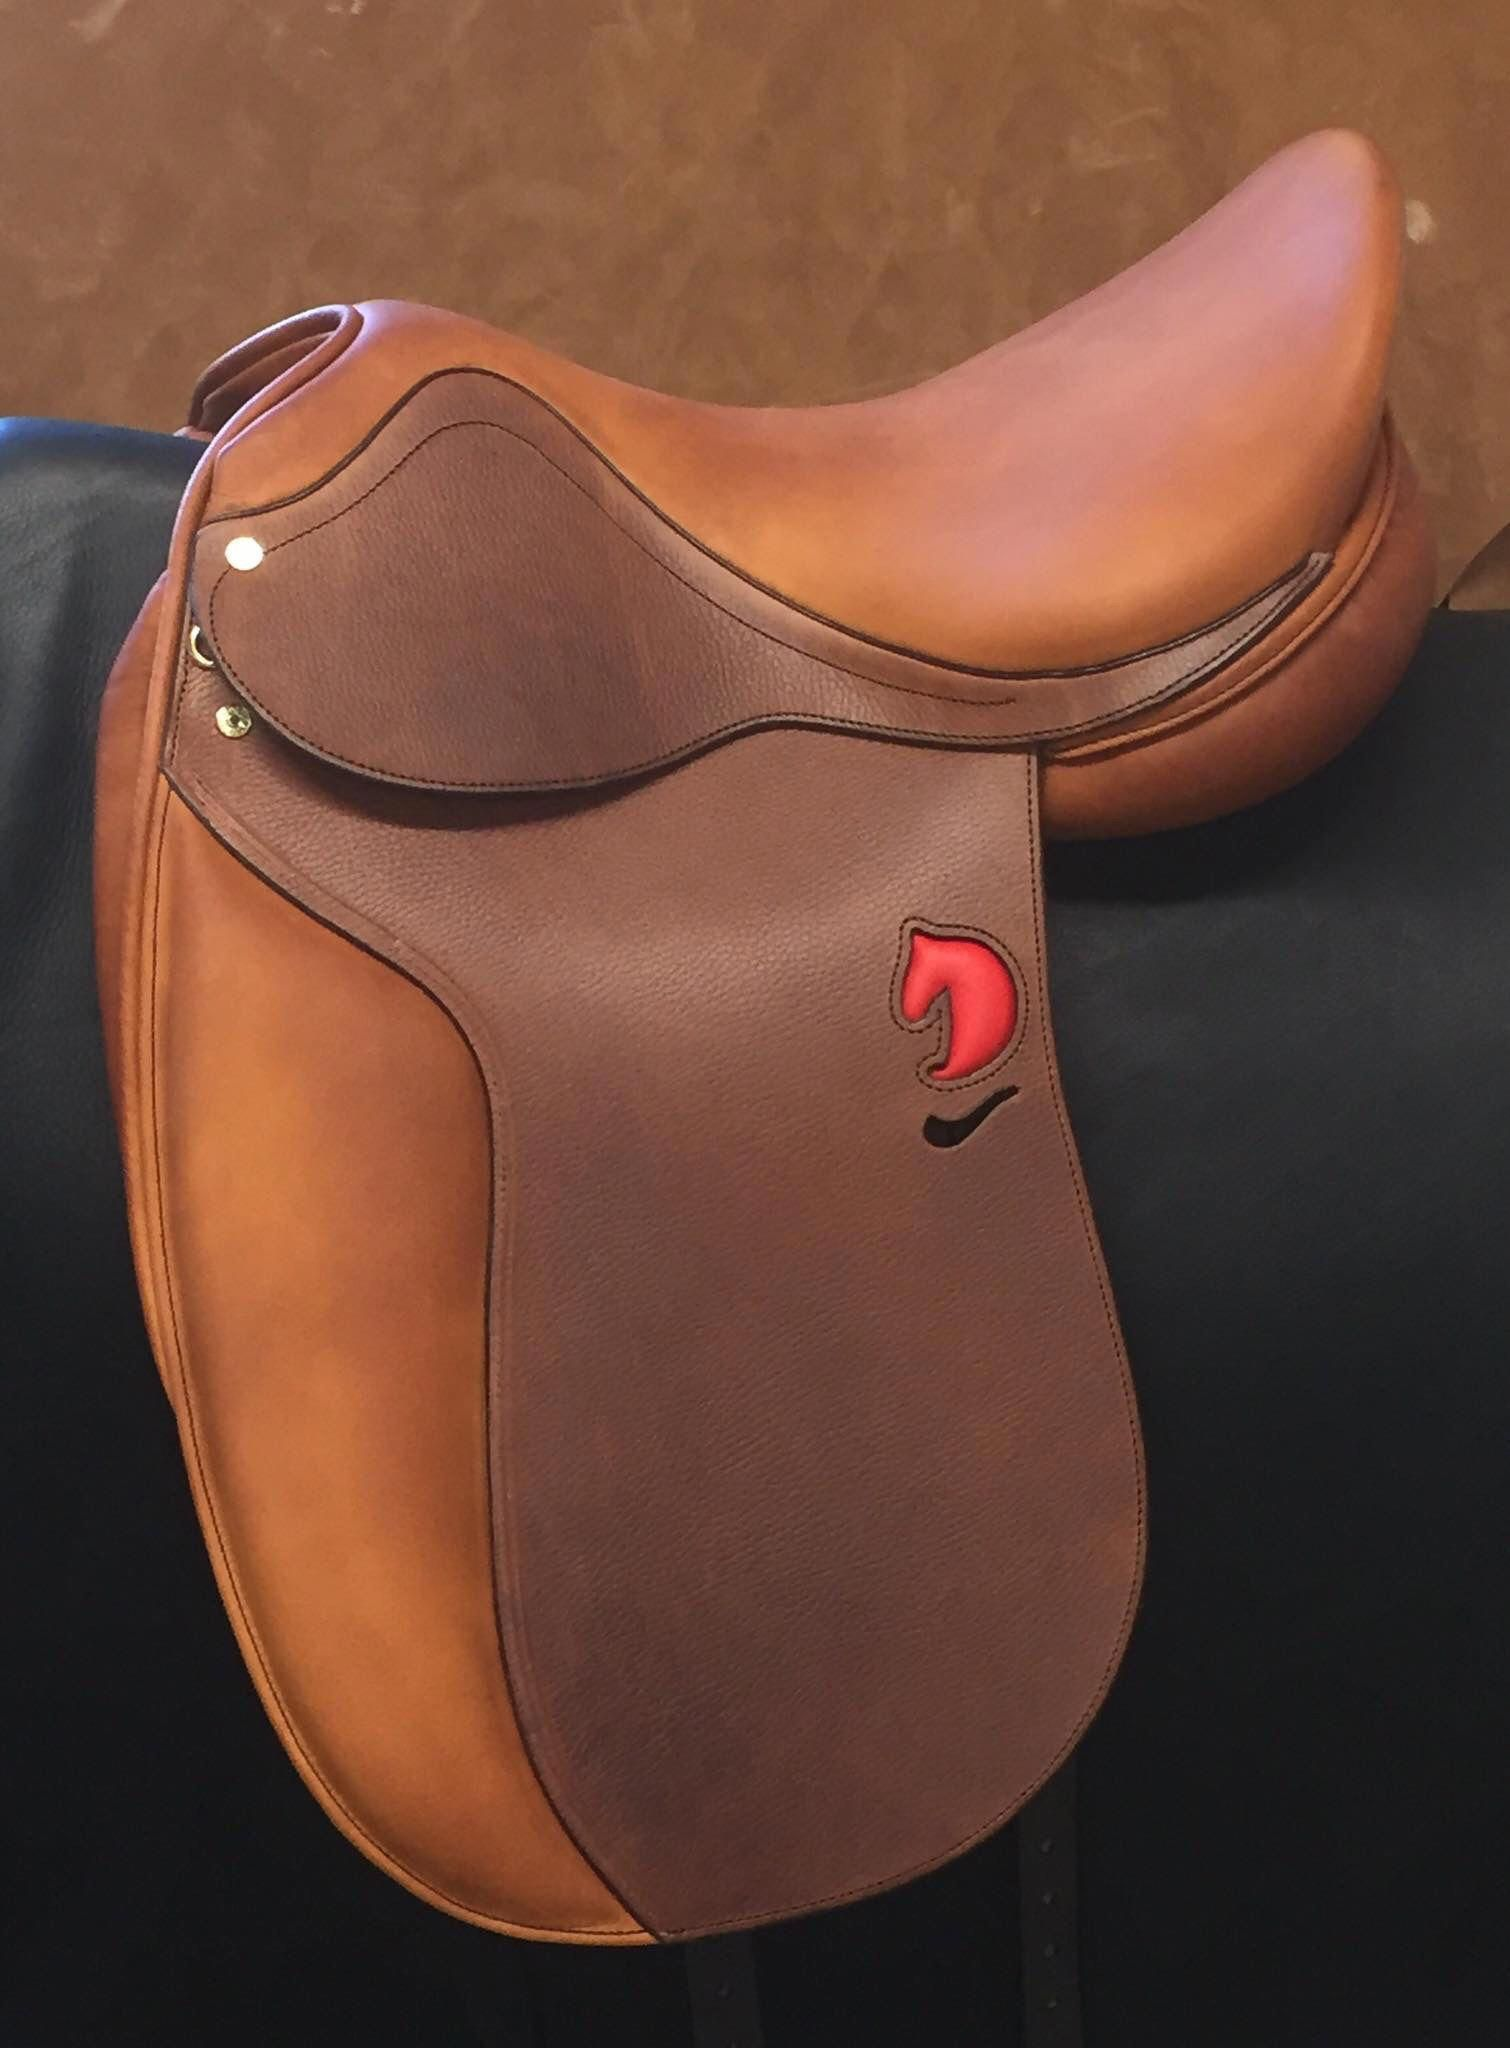 Equestrian Clothes Body Or Back Protectors Equestrian Outfits Bronc Riding Riding Outfit